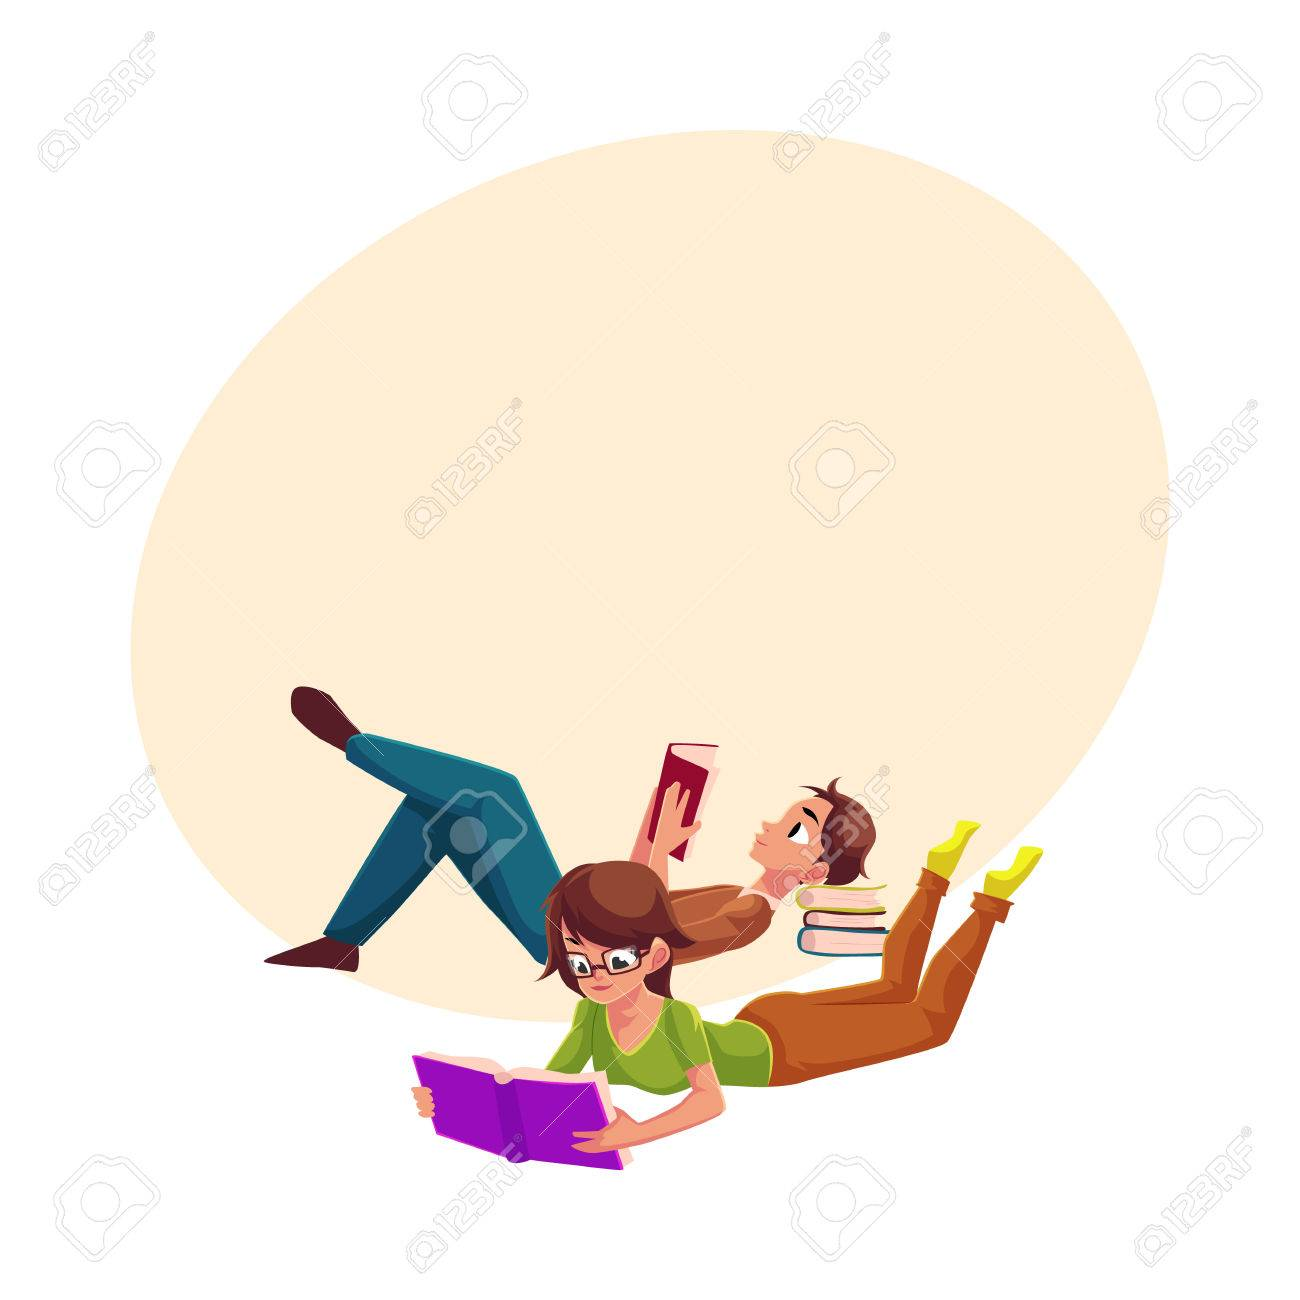 Boy man reading book and woman in glasses reading book while boy man reading book and woman in glasses reading book while lying on her stomach altavistaventures Images